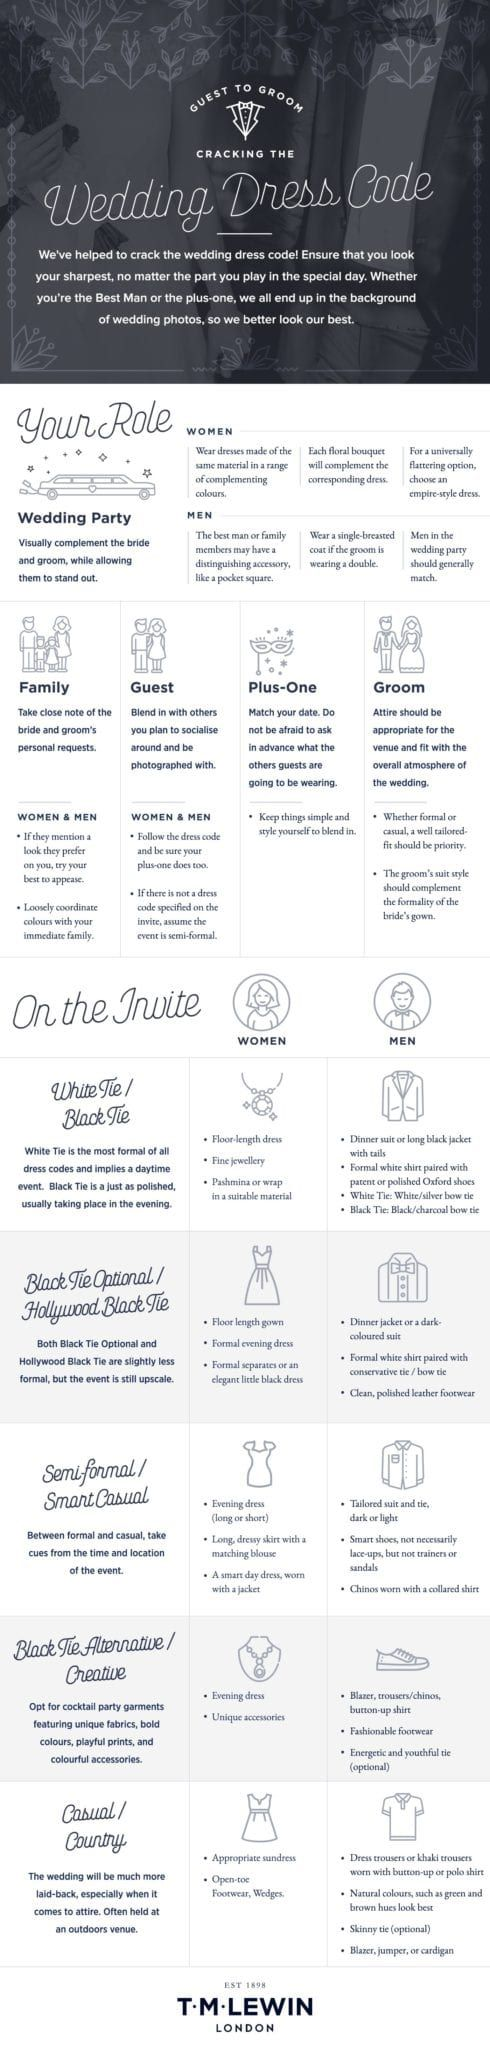 wedding dress code guide